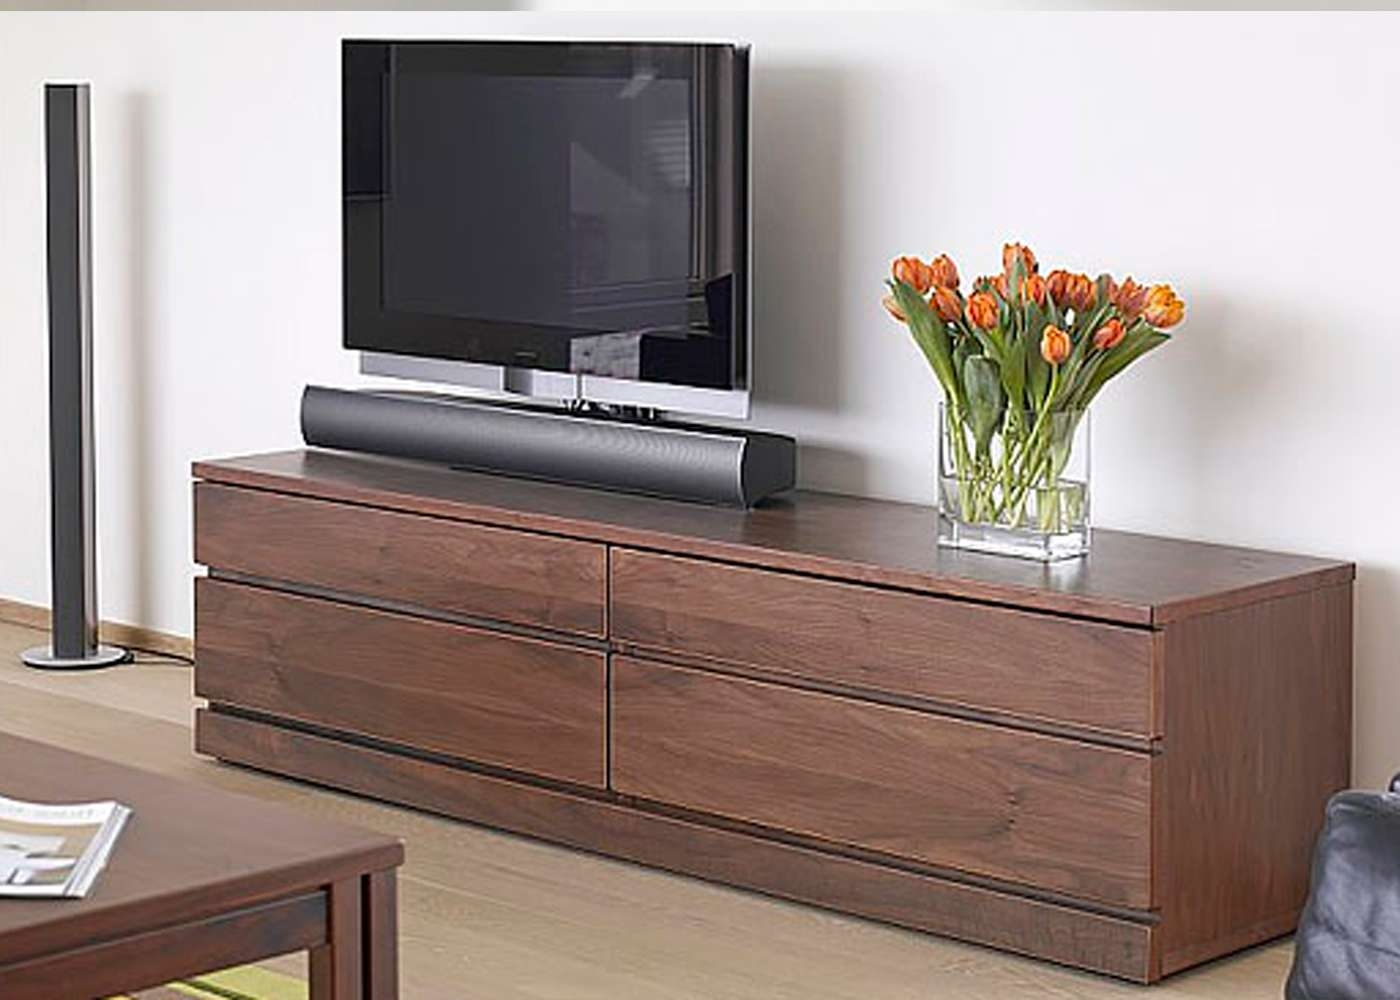 Skovby Sm87 Tv Cabinet In Walnut Finish 1 – Midfurn Furniture Inside Walnut Tv Cabinets (View 14 of 20)